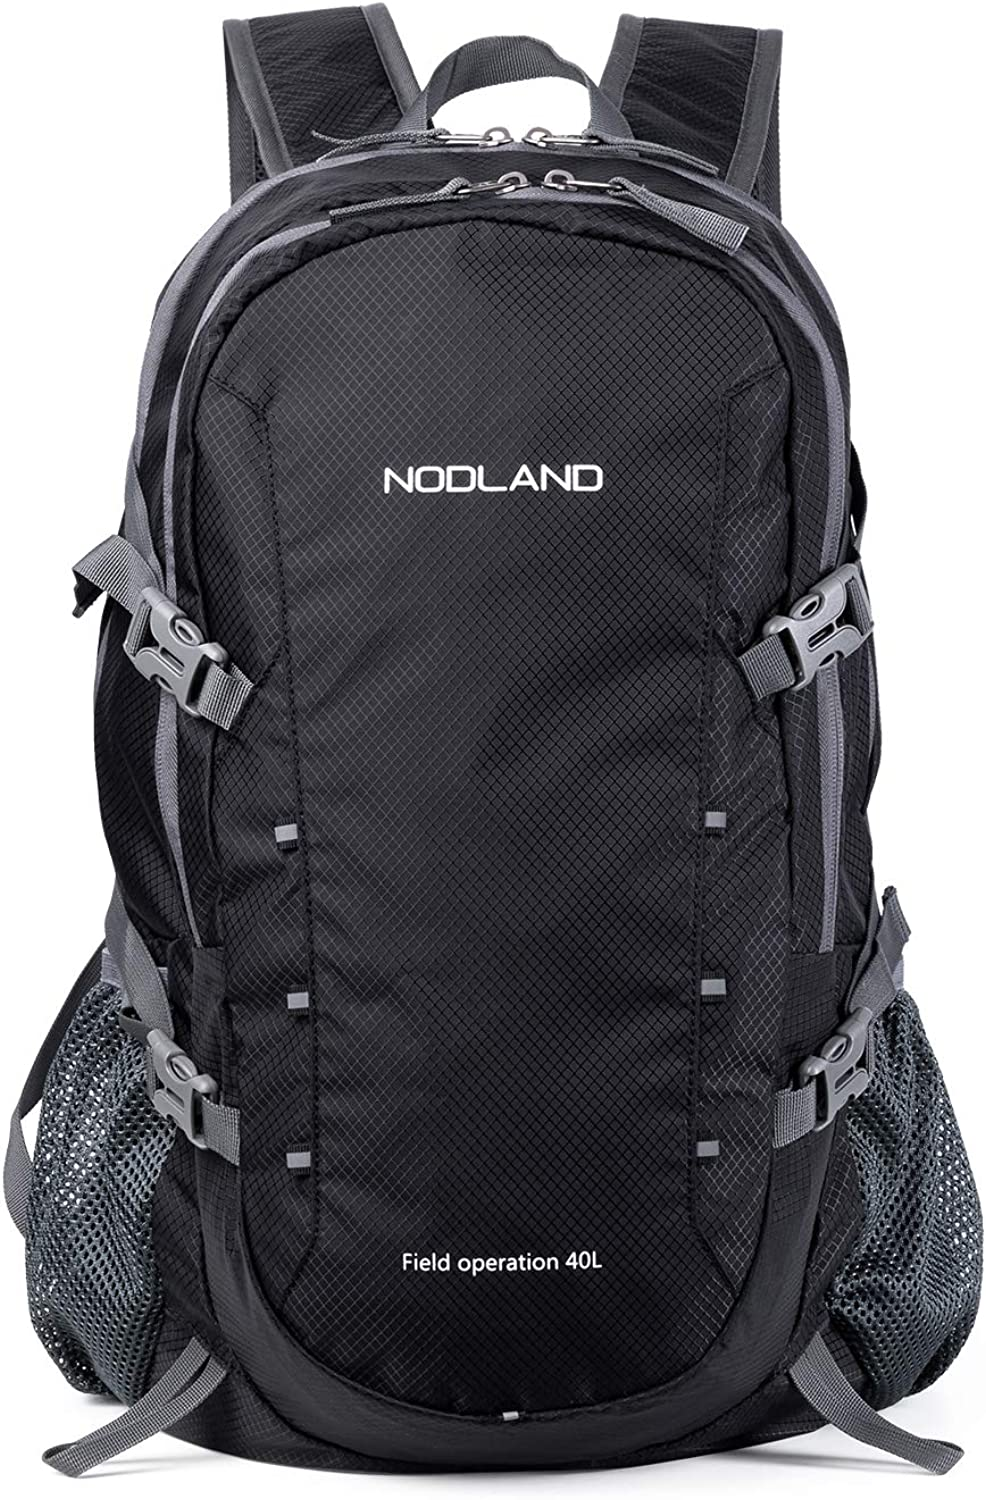 NODLAND 40L Lightweight Hiking Backpack, Packable Waterproof Travel Daypack for Men and Women